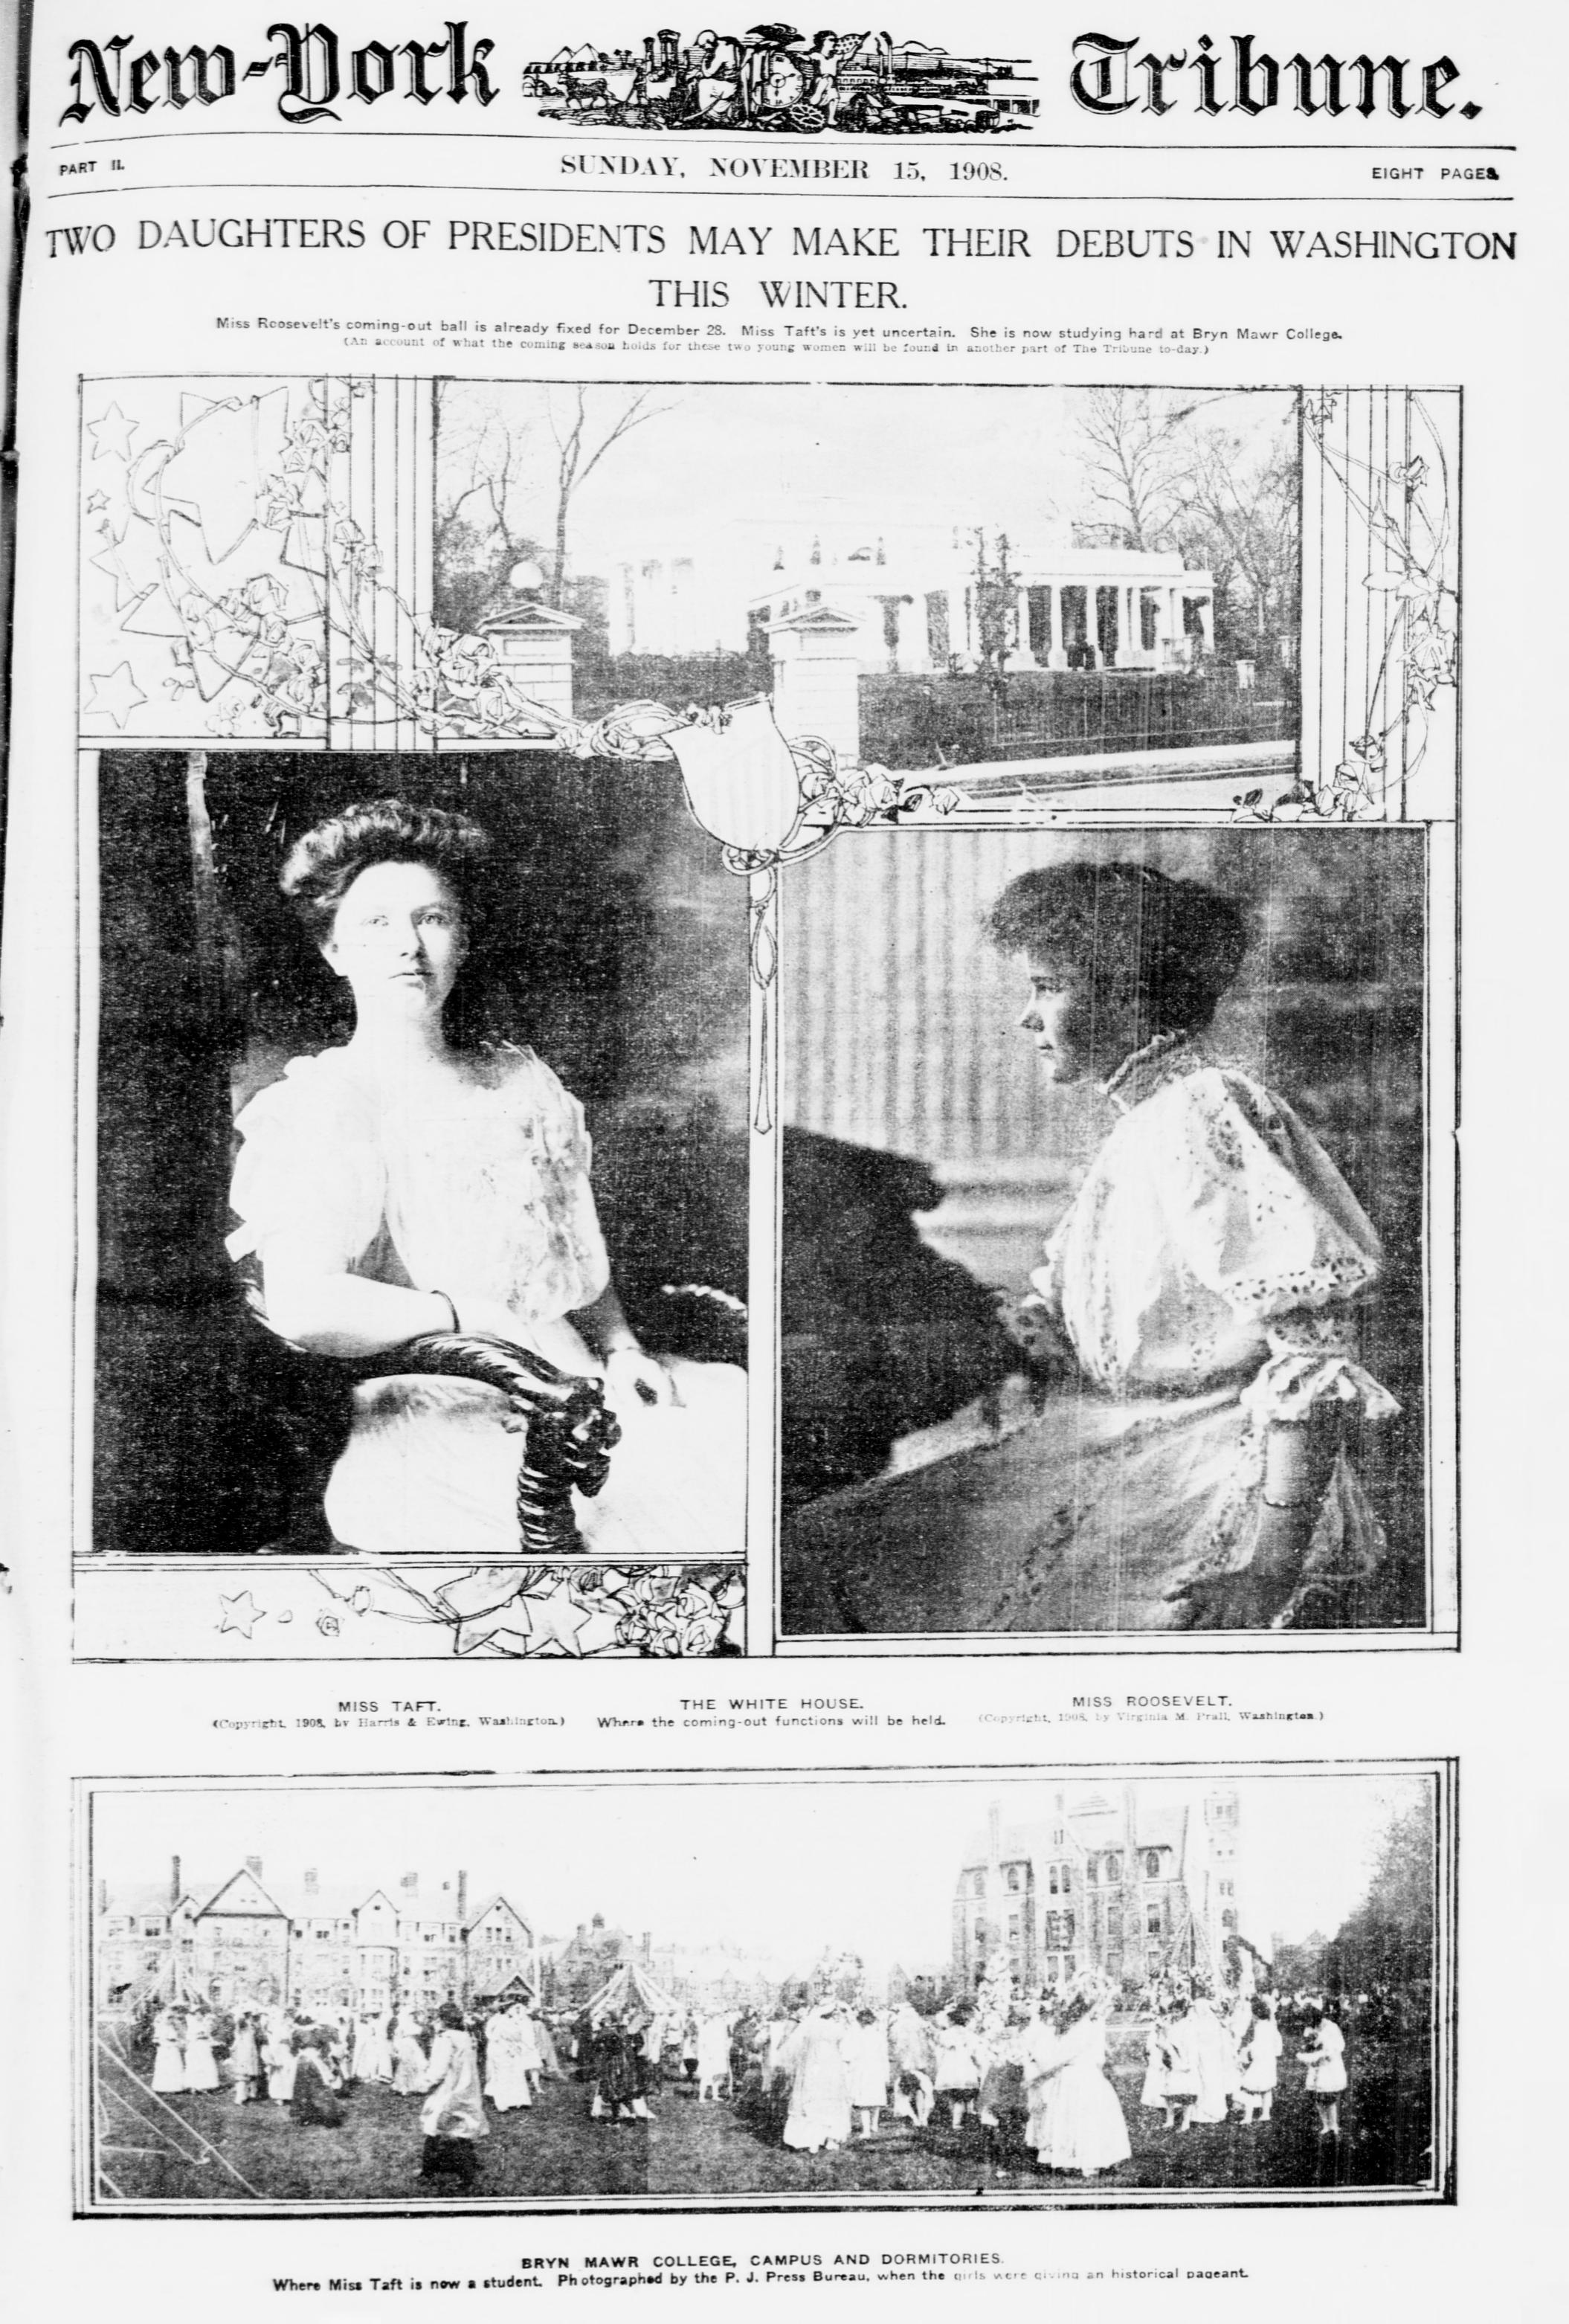 New-York Tribune   society pages on Theodore Roosevelt's daughters from November 15, 1908 (via    Flickr   )